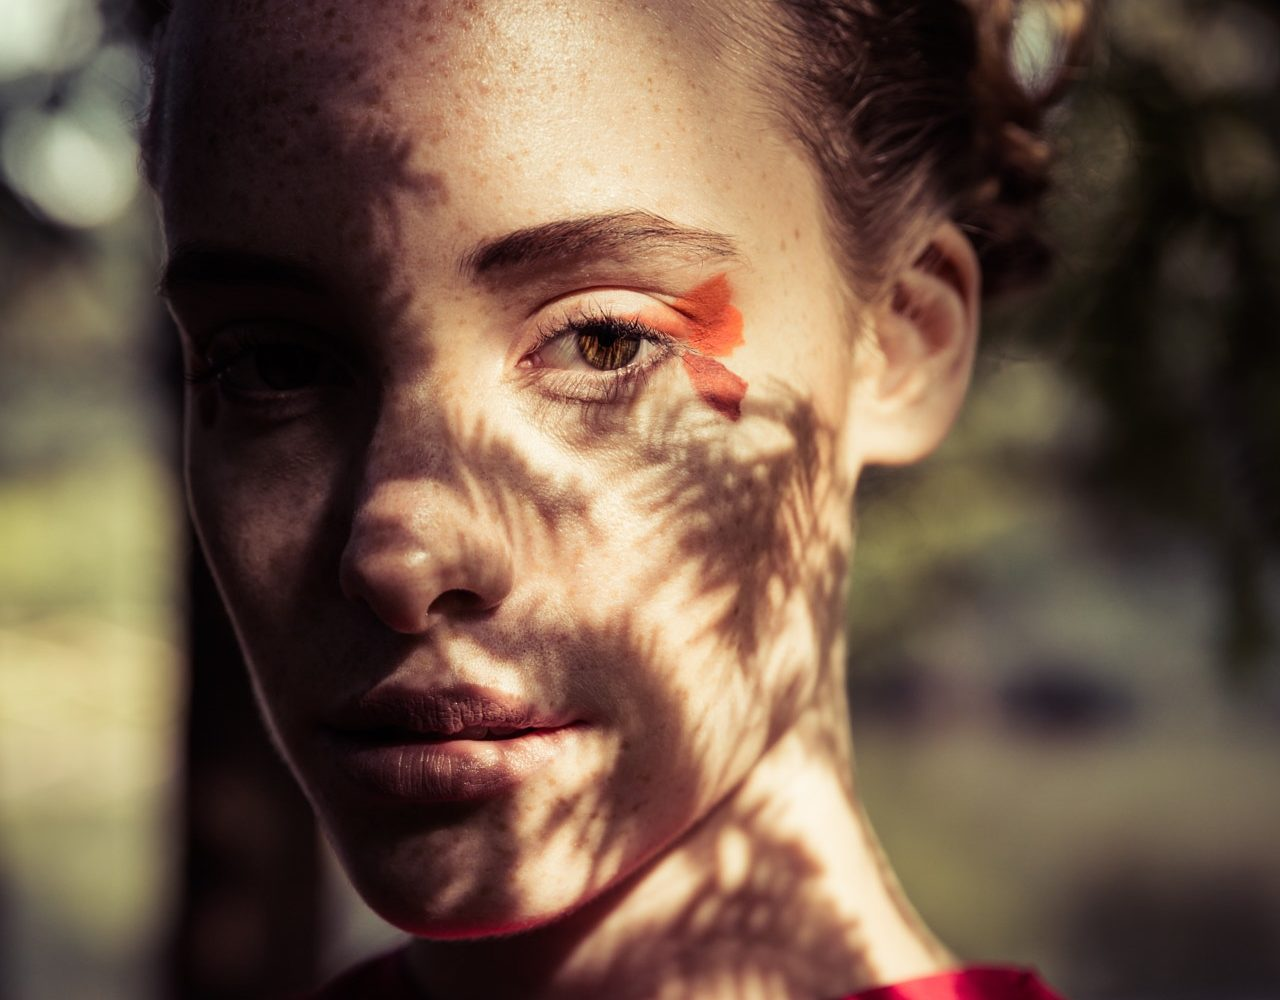 500px Blog  10 Winning Faces The Best of Our Portrait